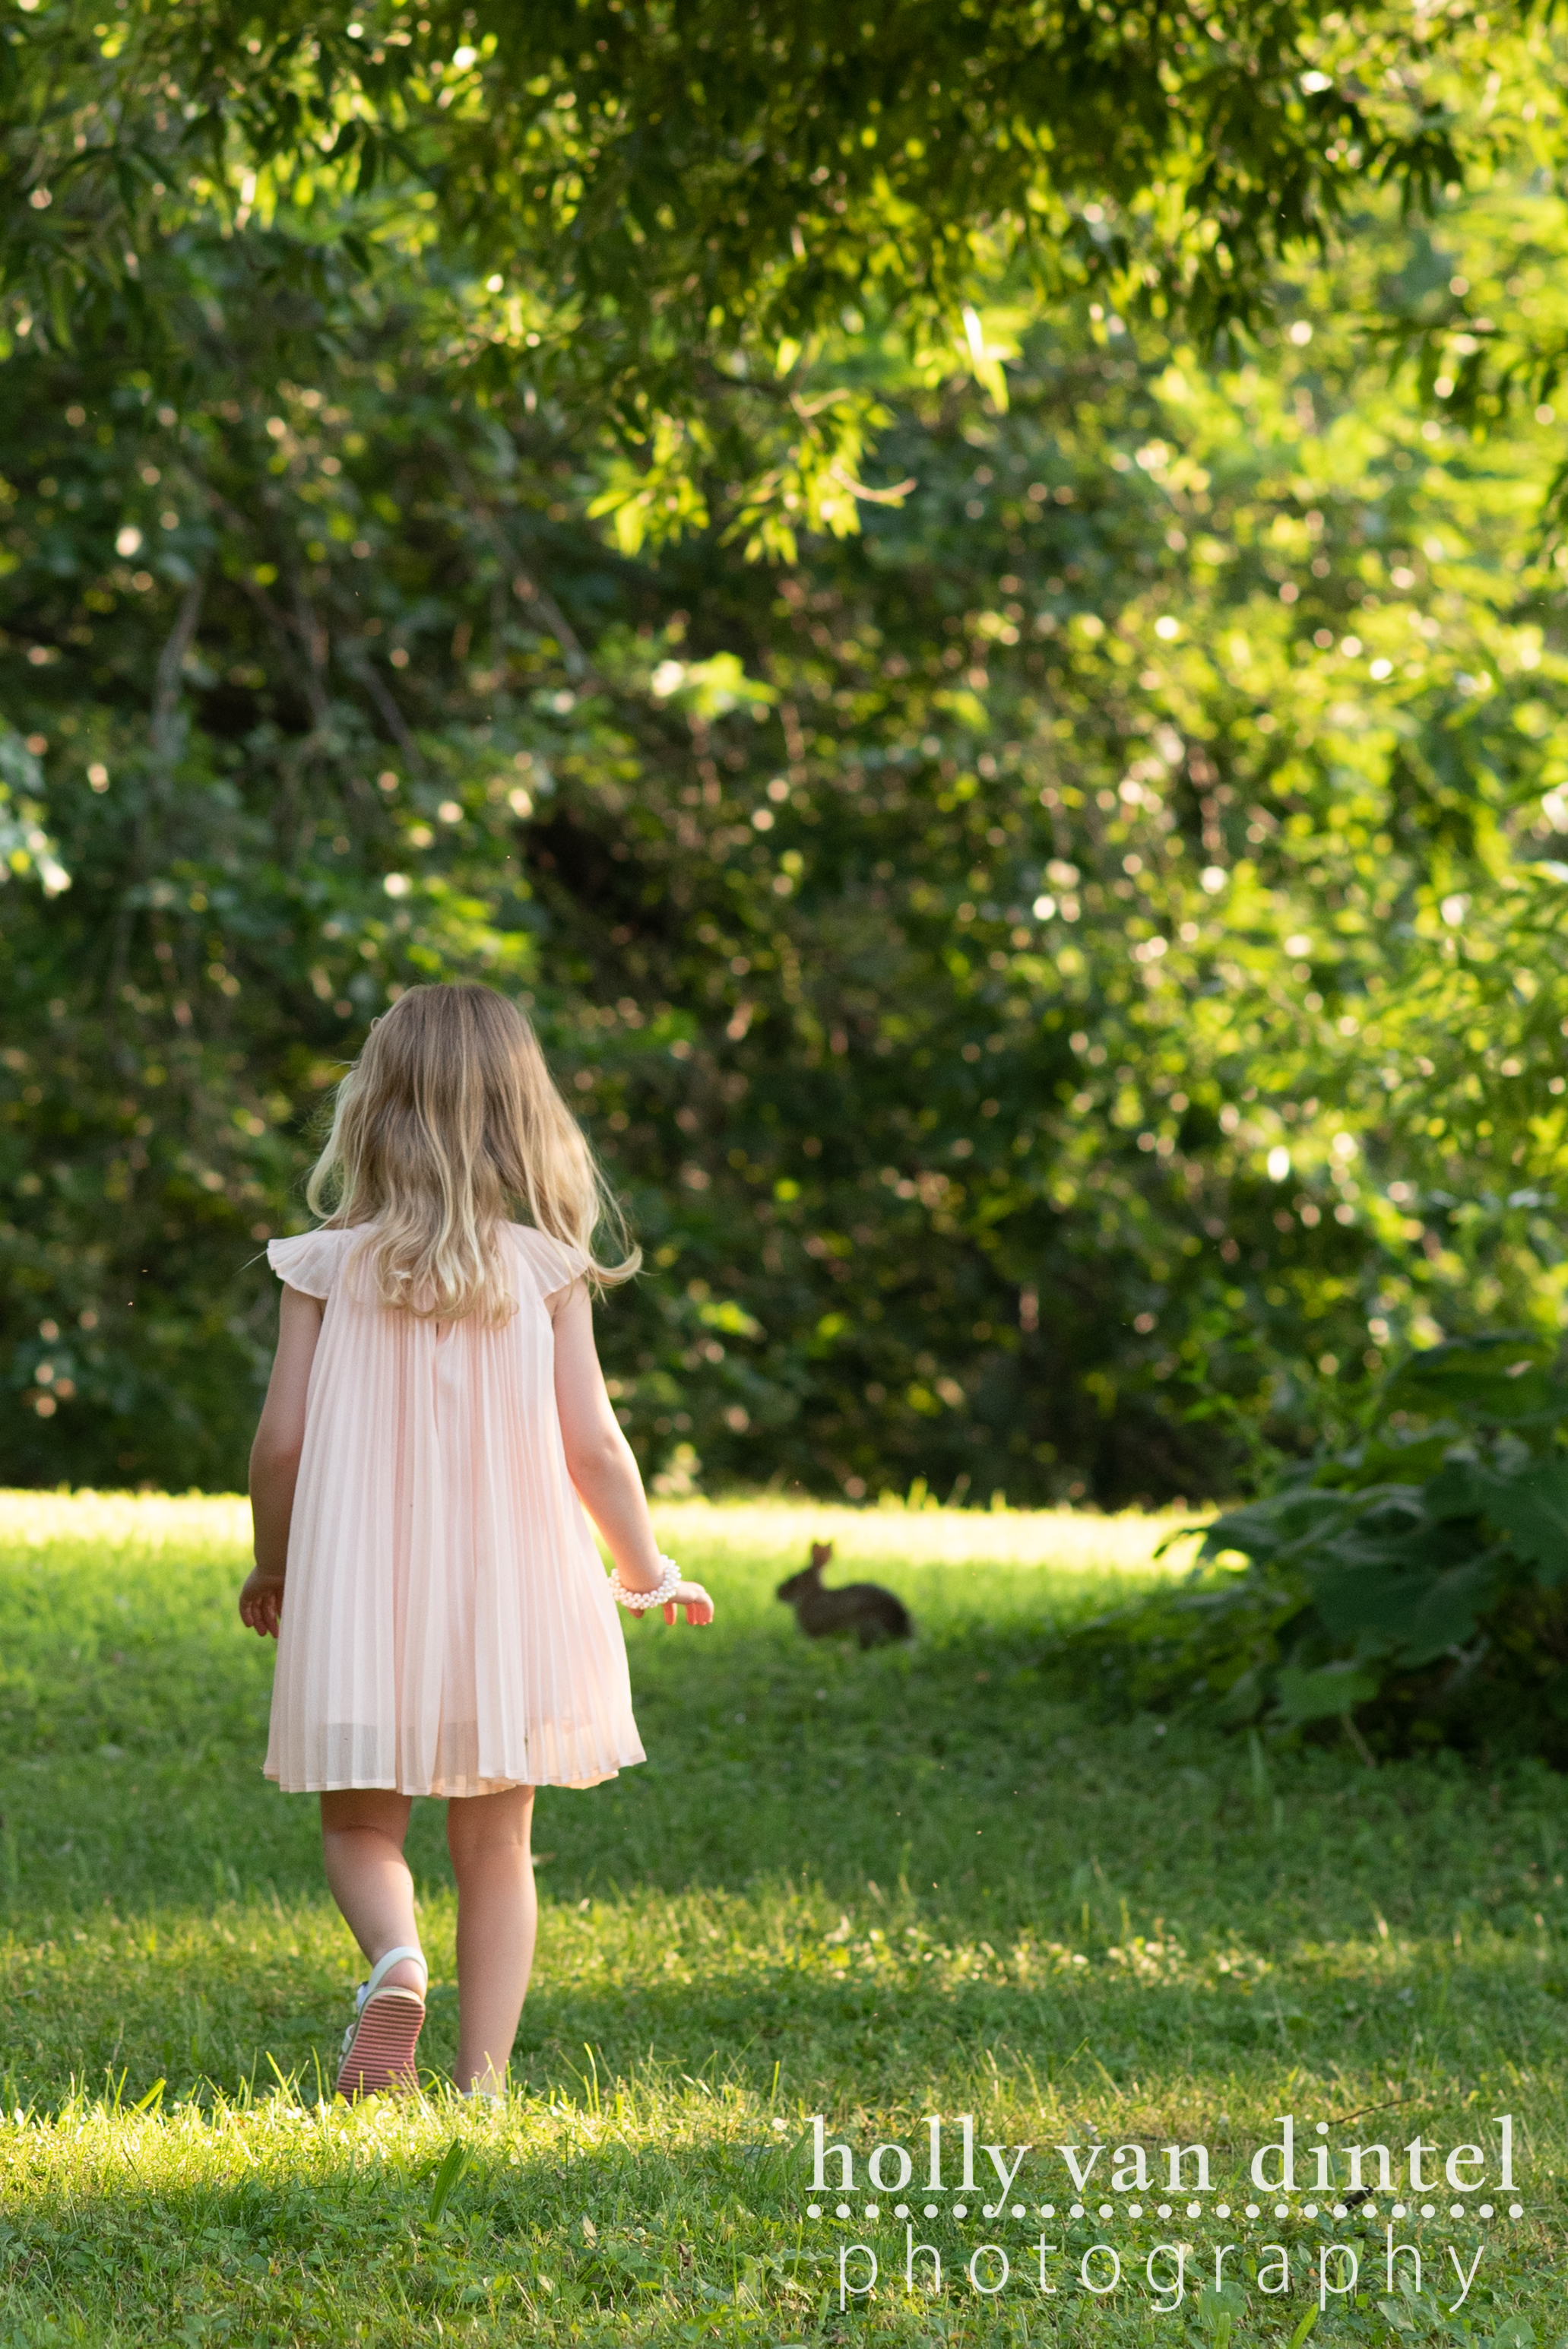 Little girl walking towards a small rabbit sitting in the grass.